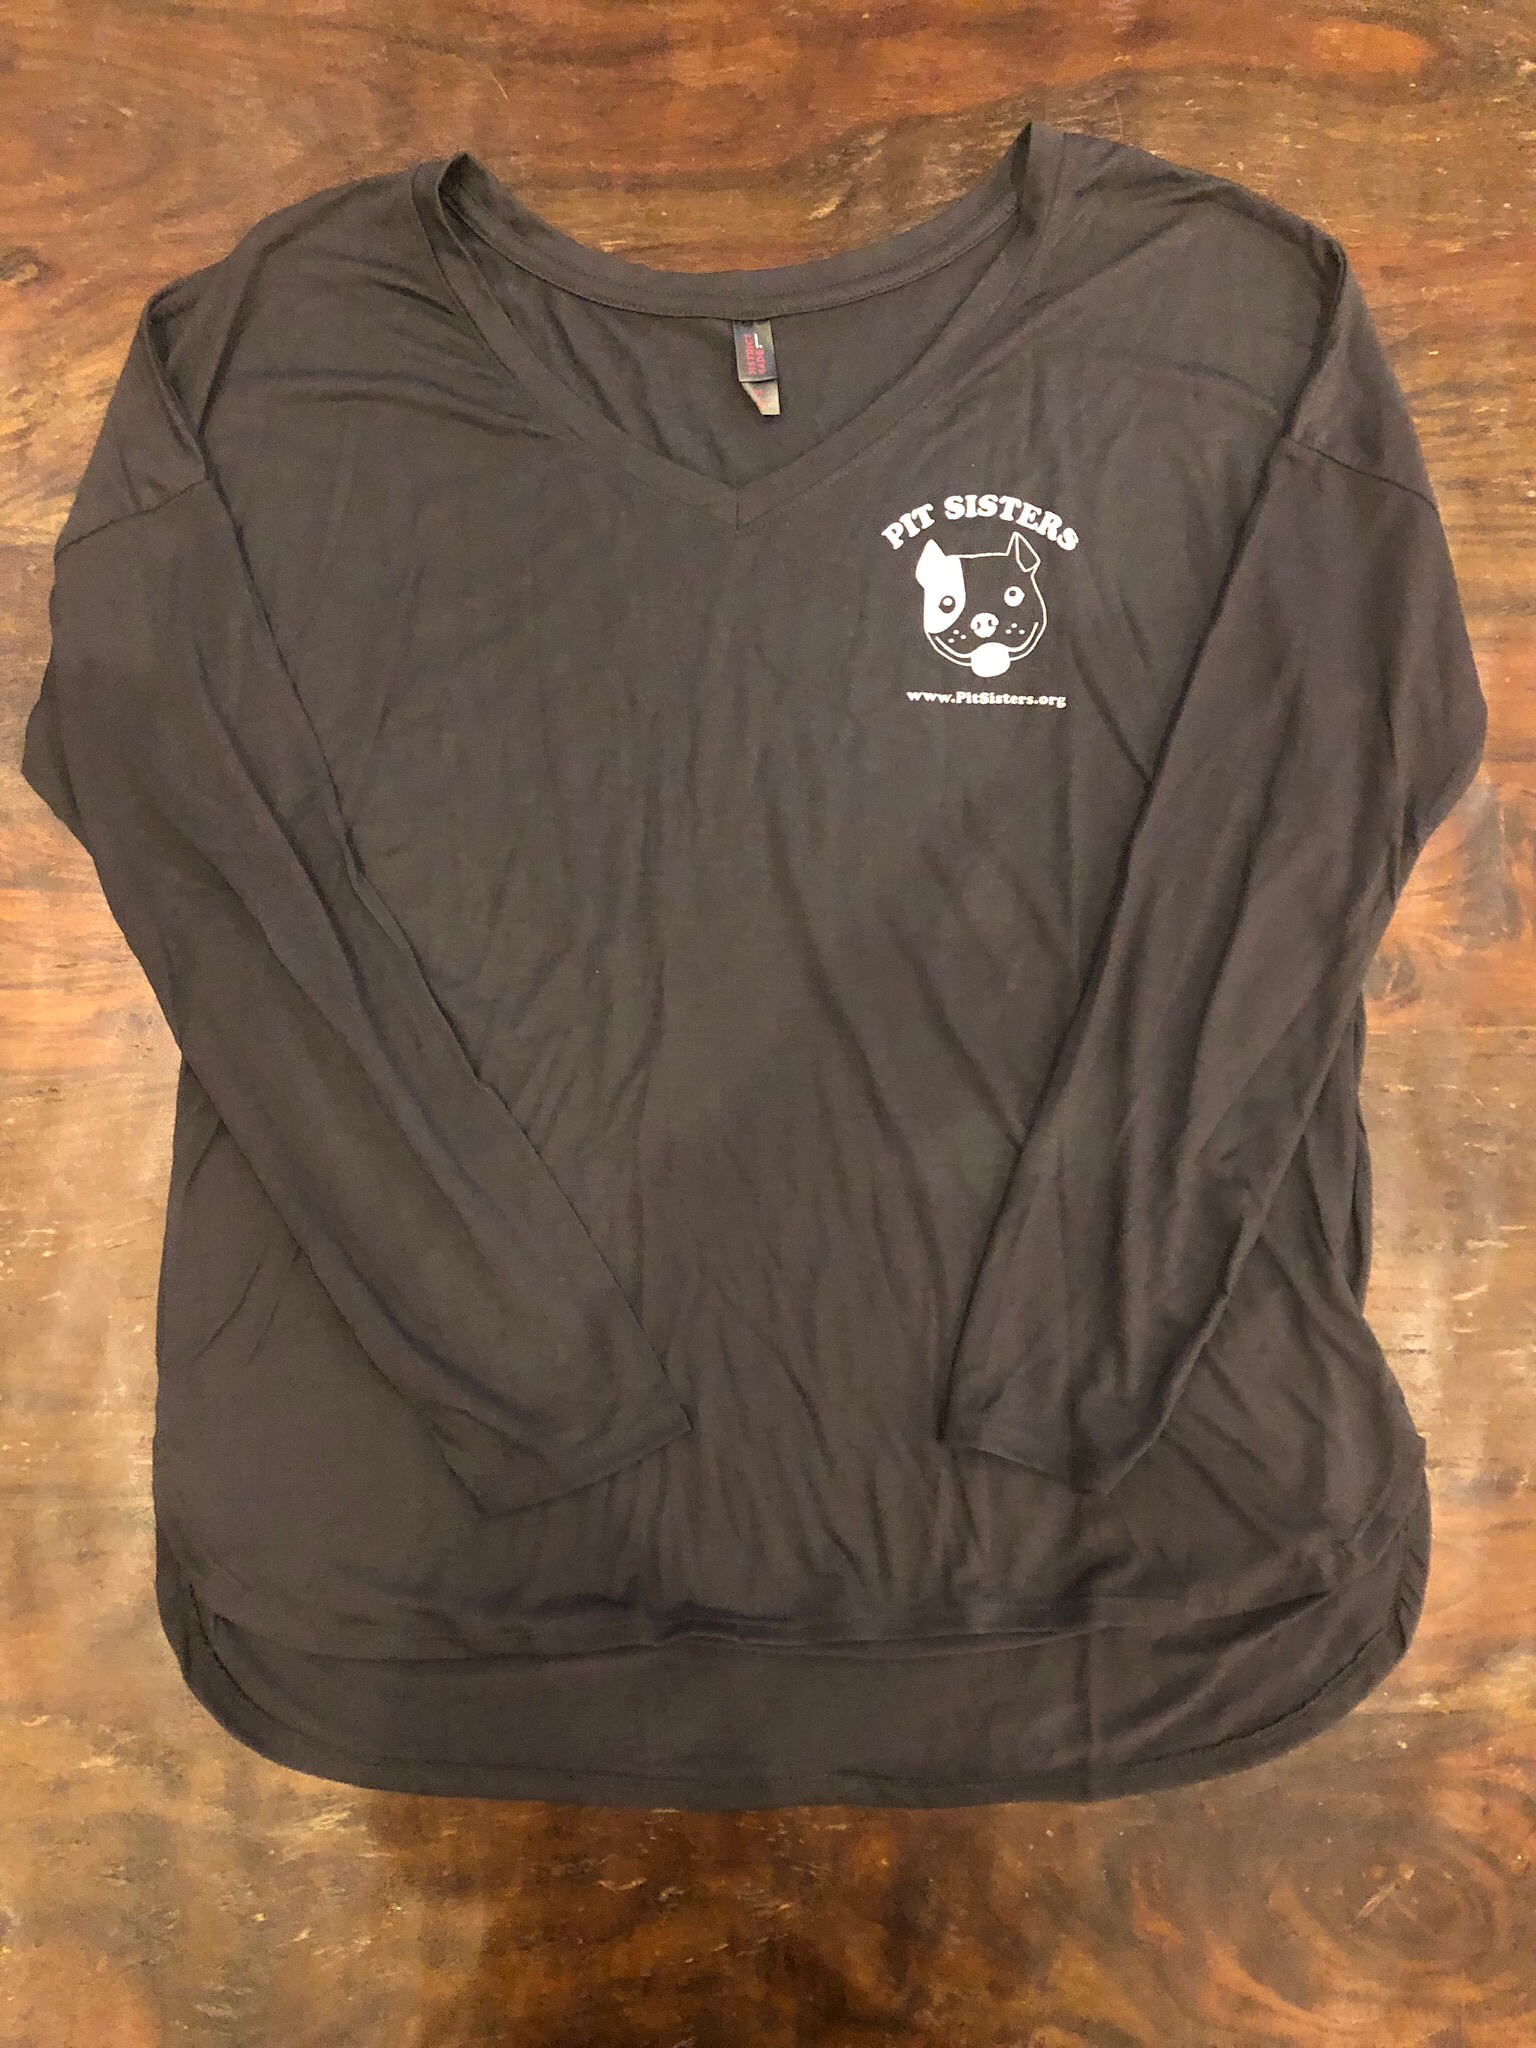 Gray long sleeved VNeck with Pit Sisters logo- XL 55696